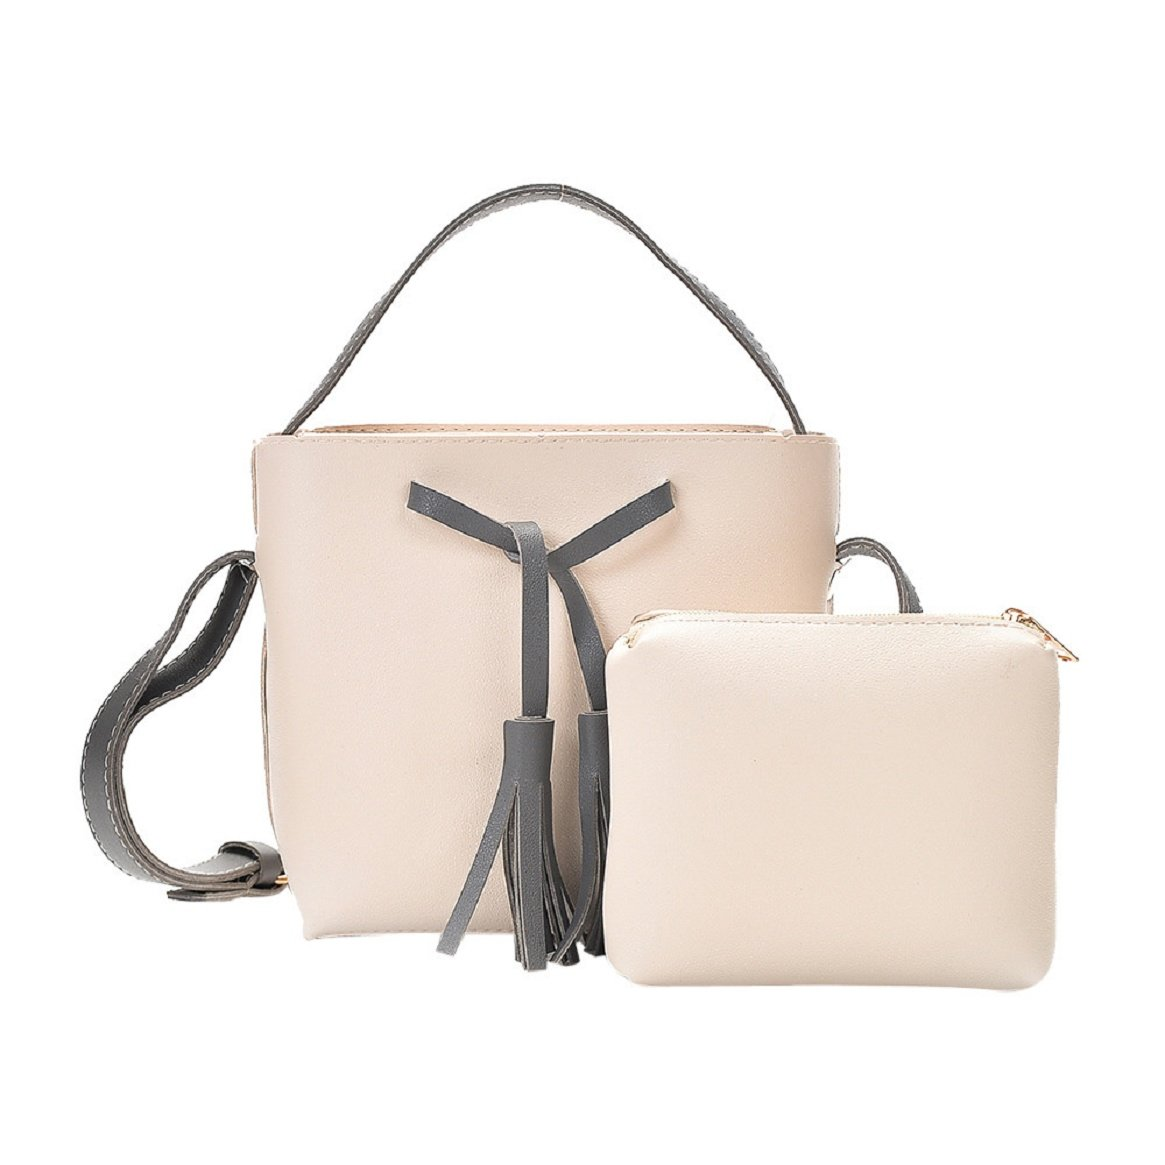 Women PU Leather Purses and Handbags Pack of 2 by Coerni (Beige)